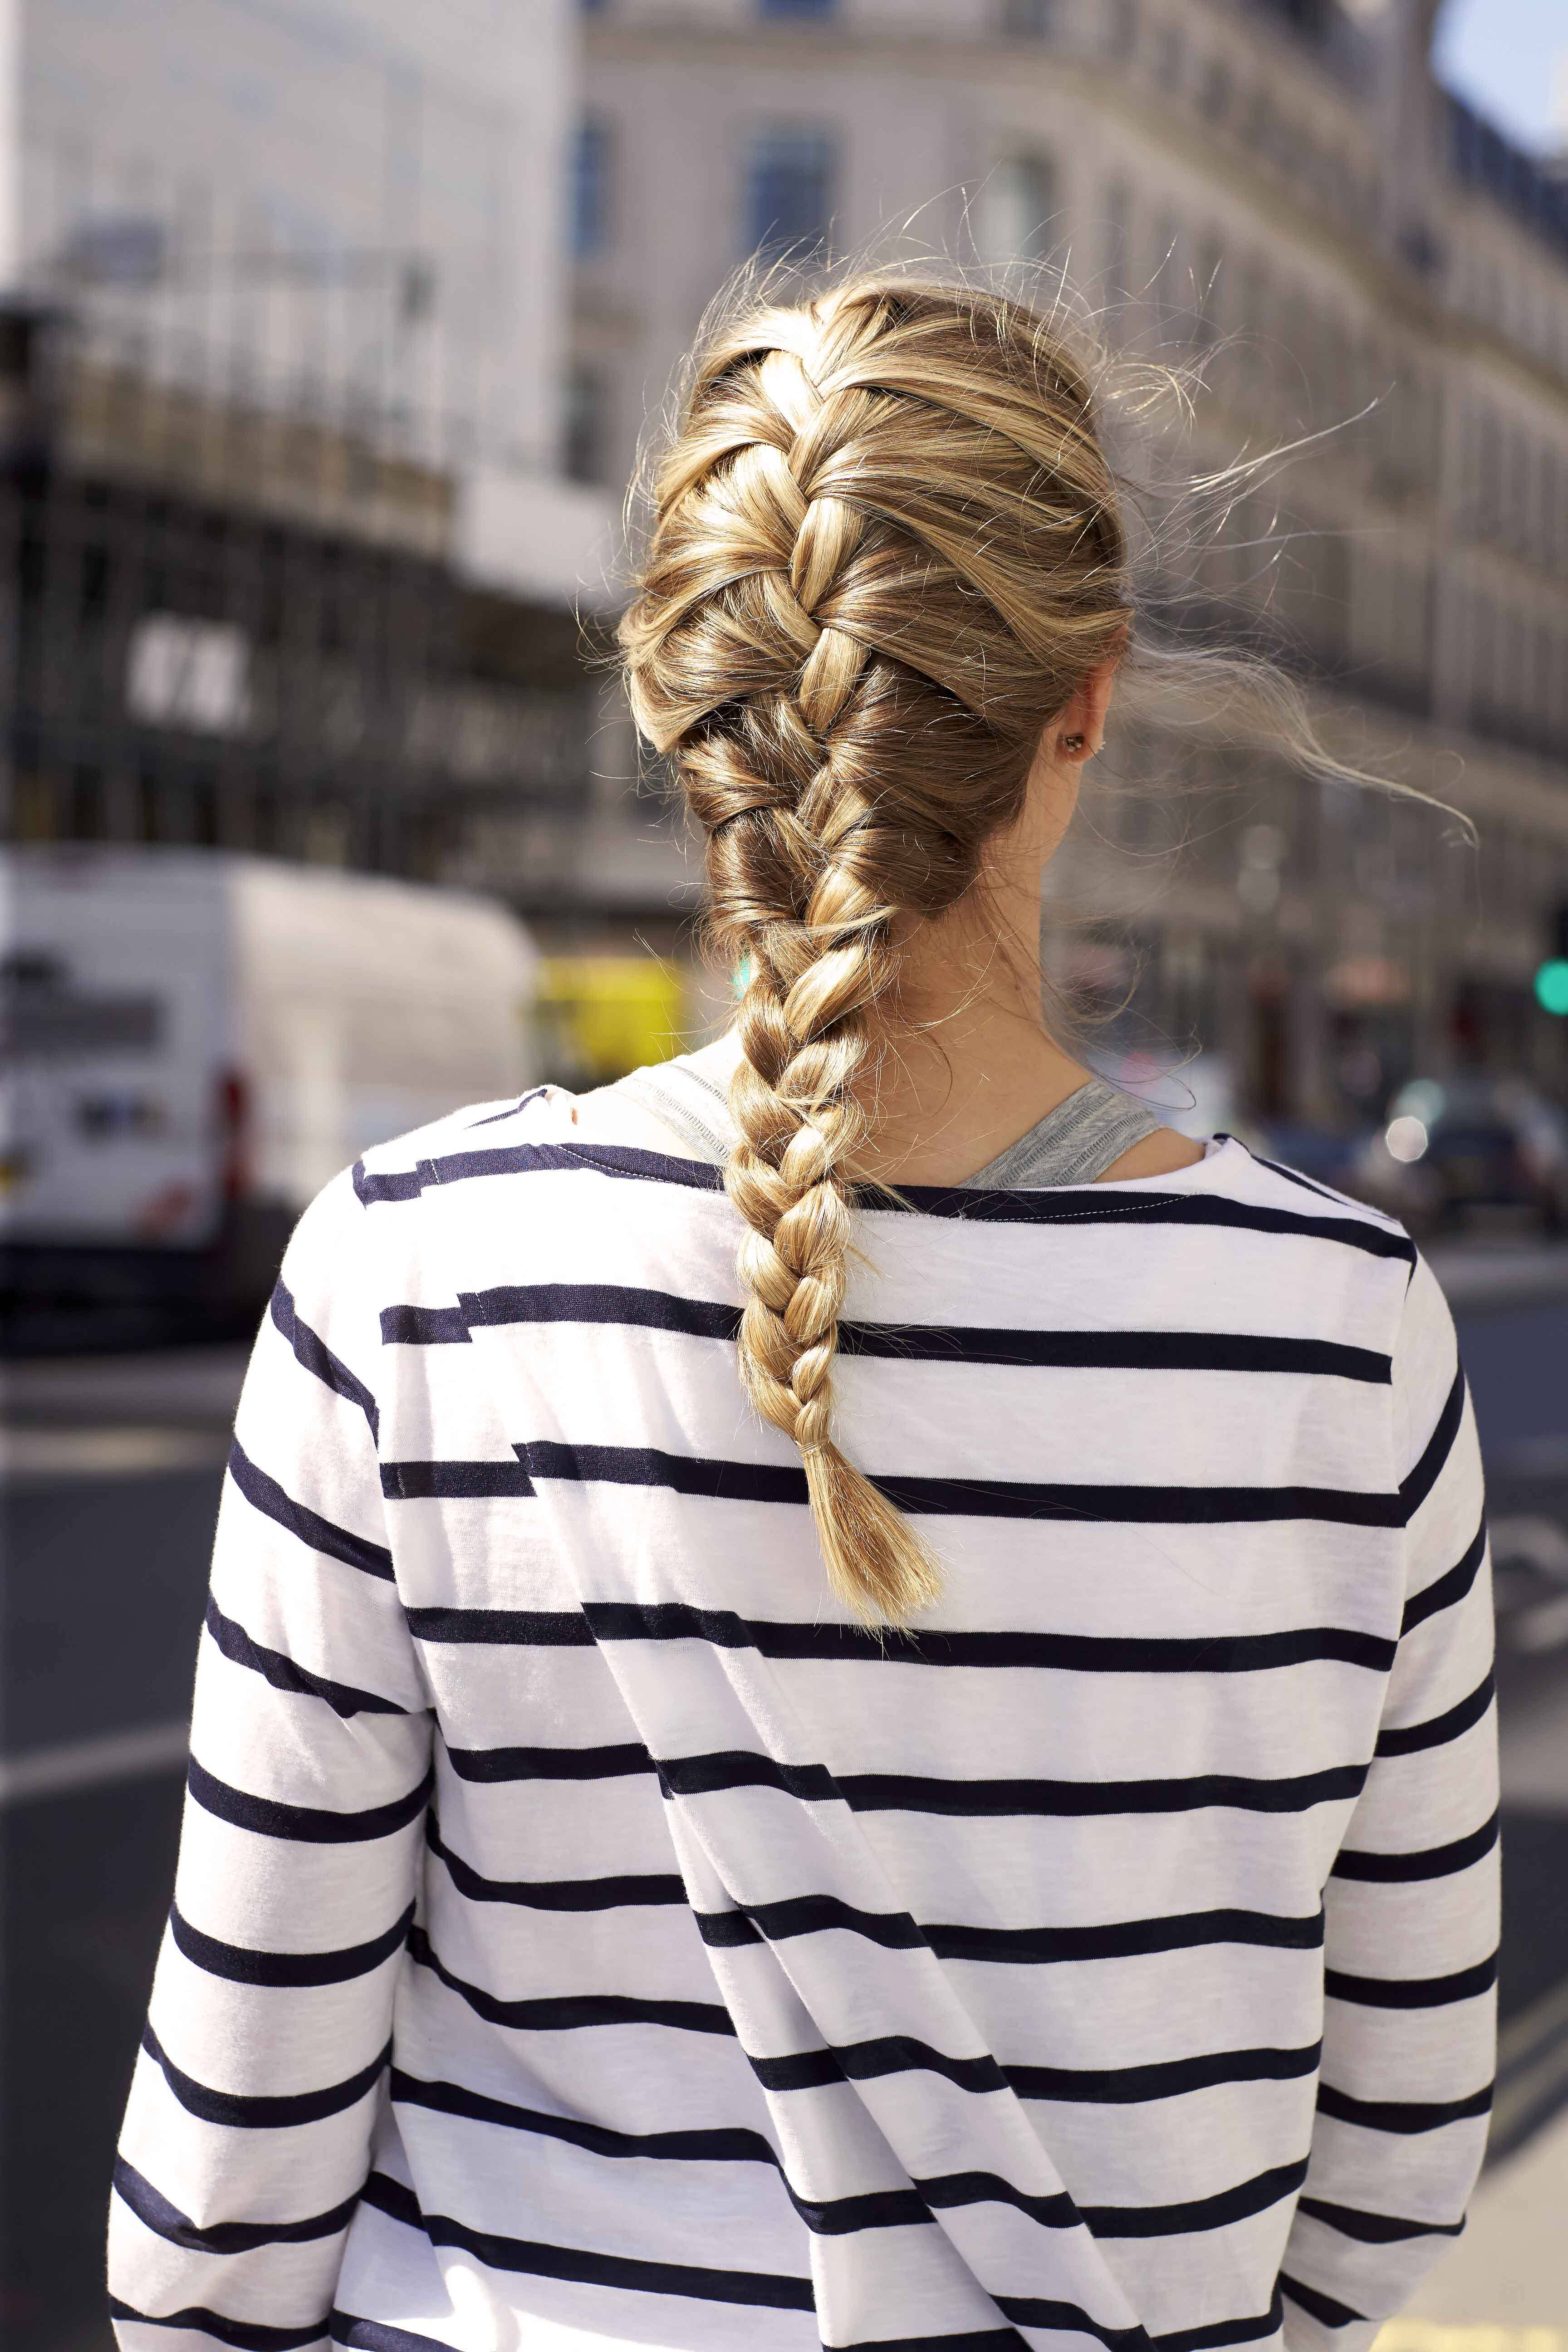 How To French Braid Your Own Hair: A Simple Stepbystep